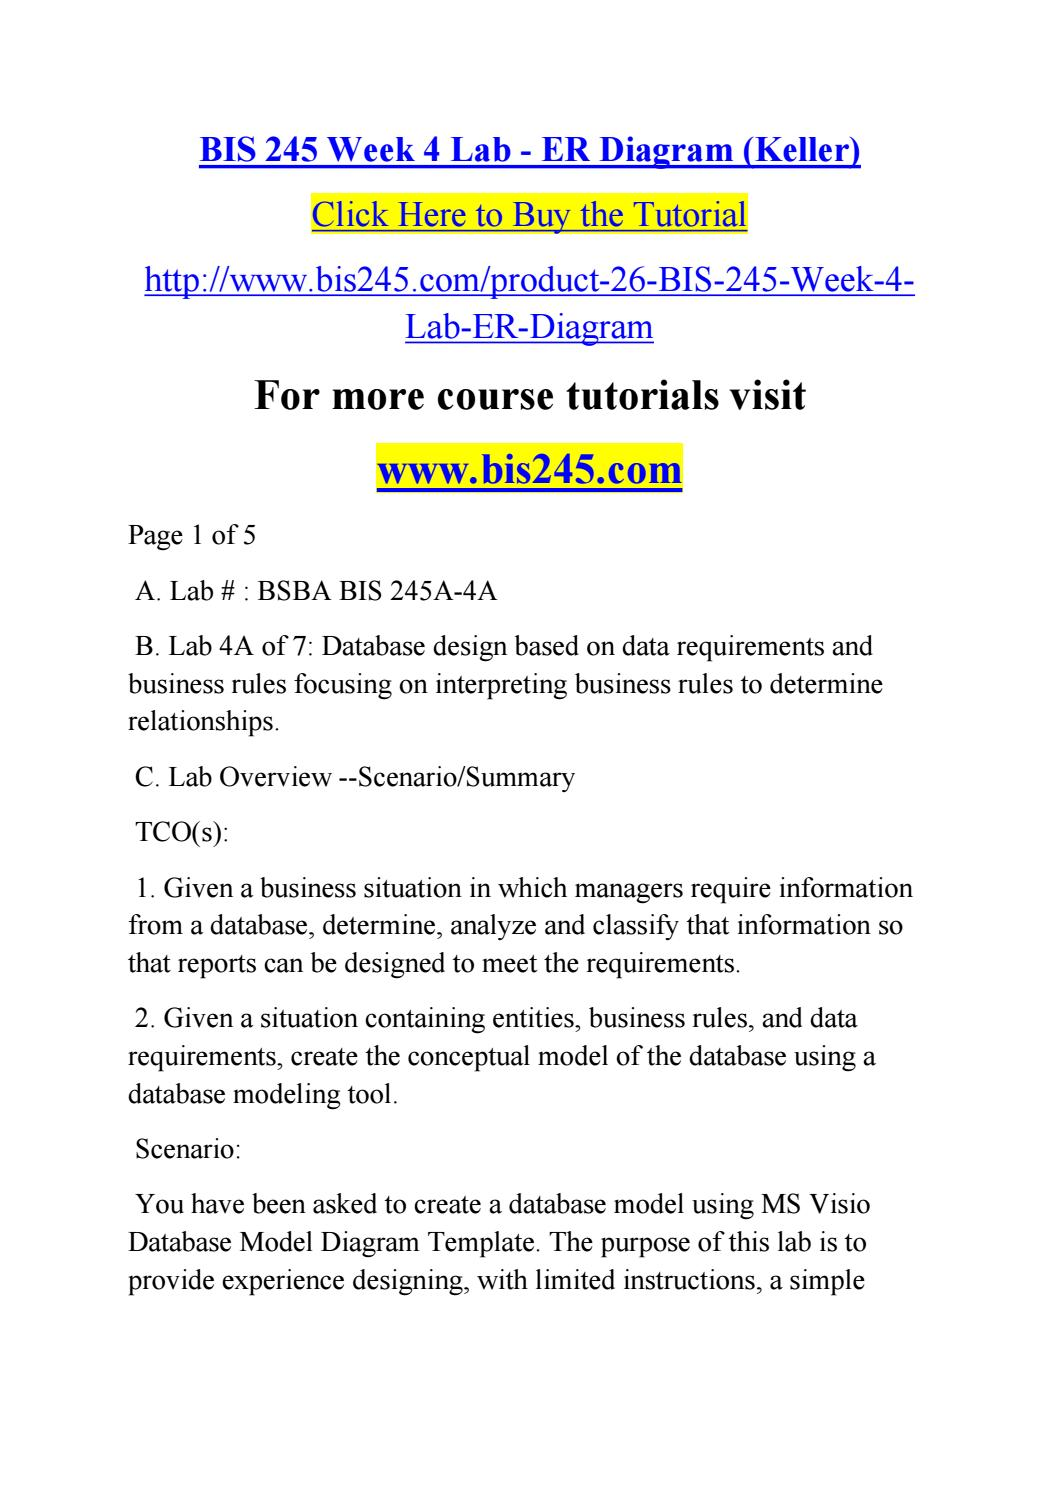 Bis 245 Week 4 Lab Er Diagram Keller By Willrusa123 Issuu